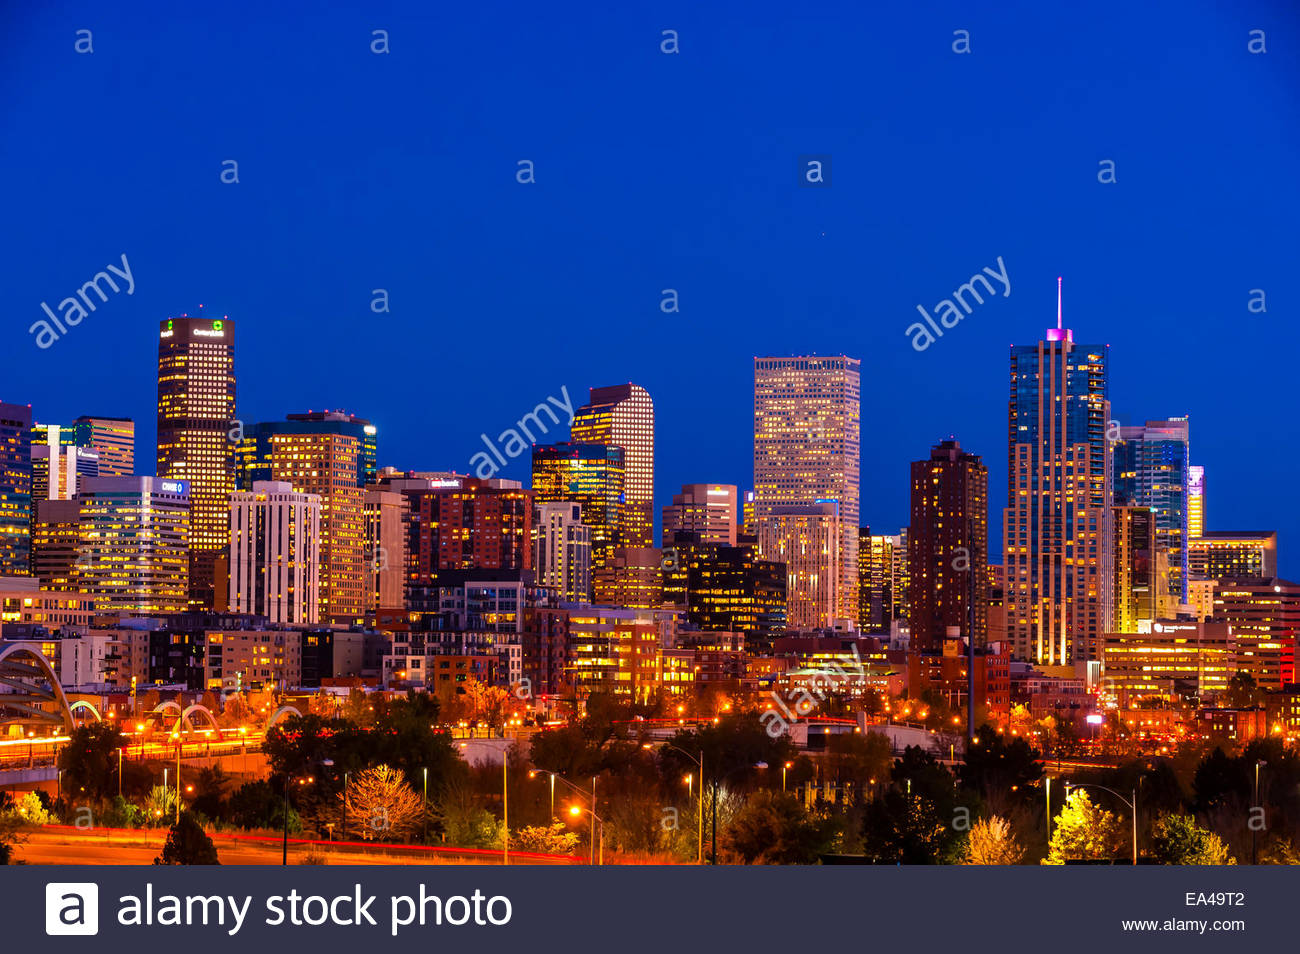 Downtown Denver skyline with Interstate 25 in the foreground, Denver, Colorado USA. - Stock Image